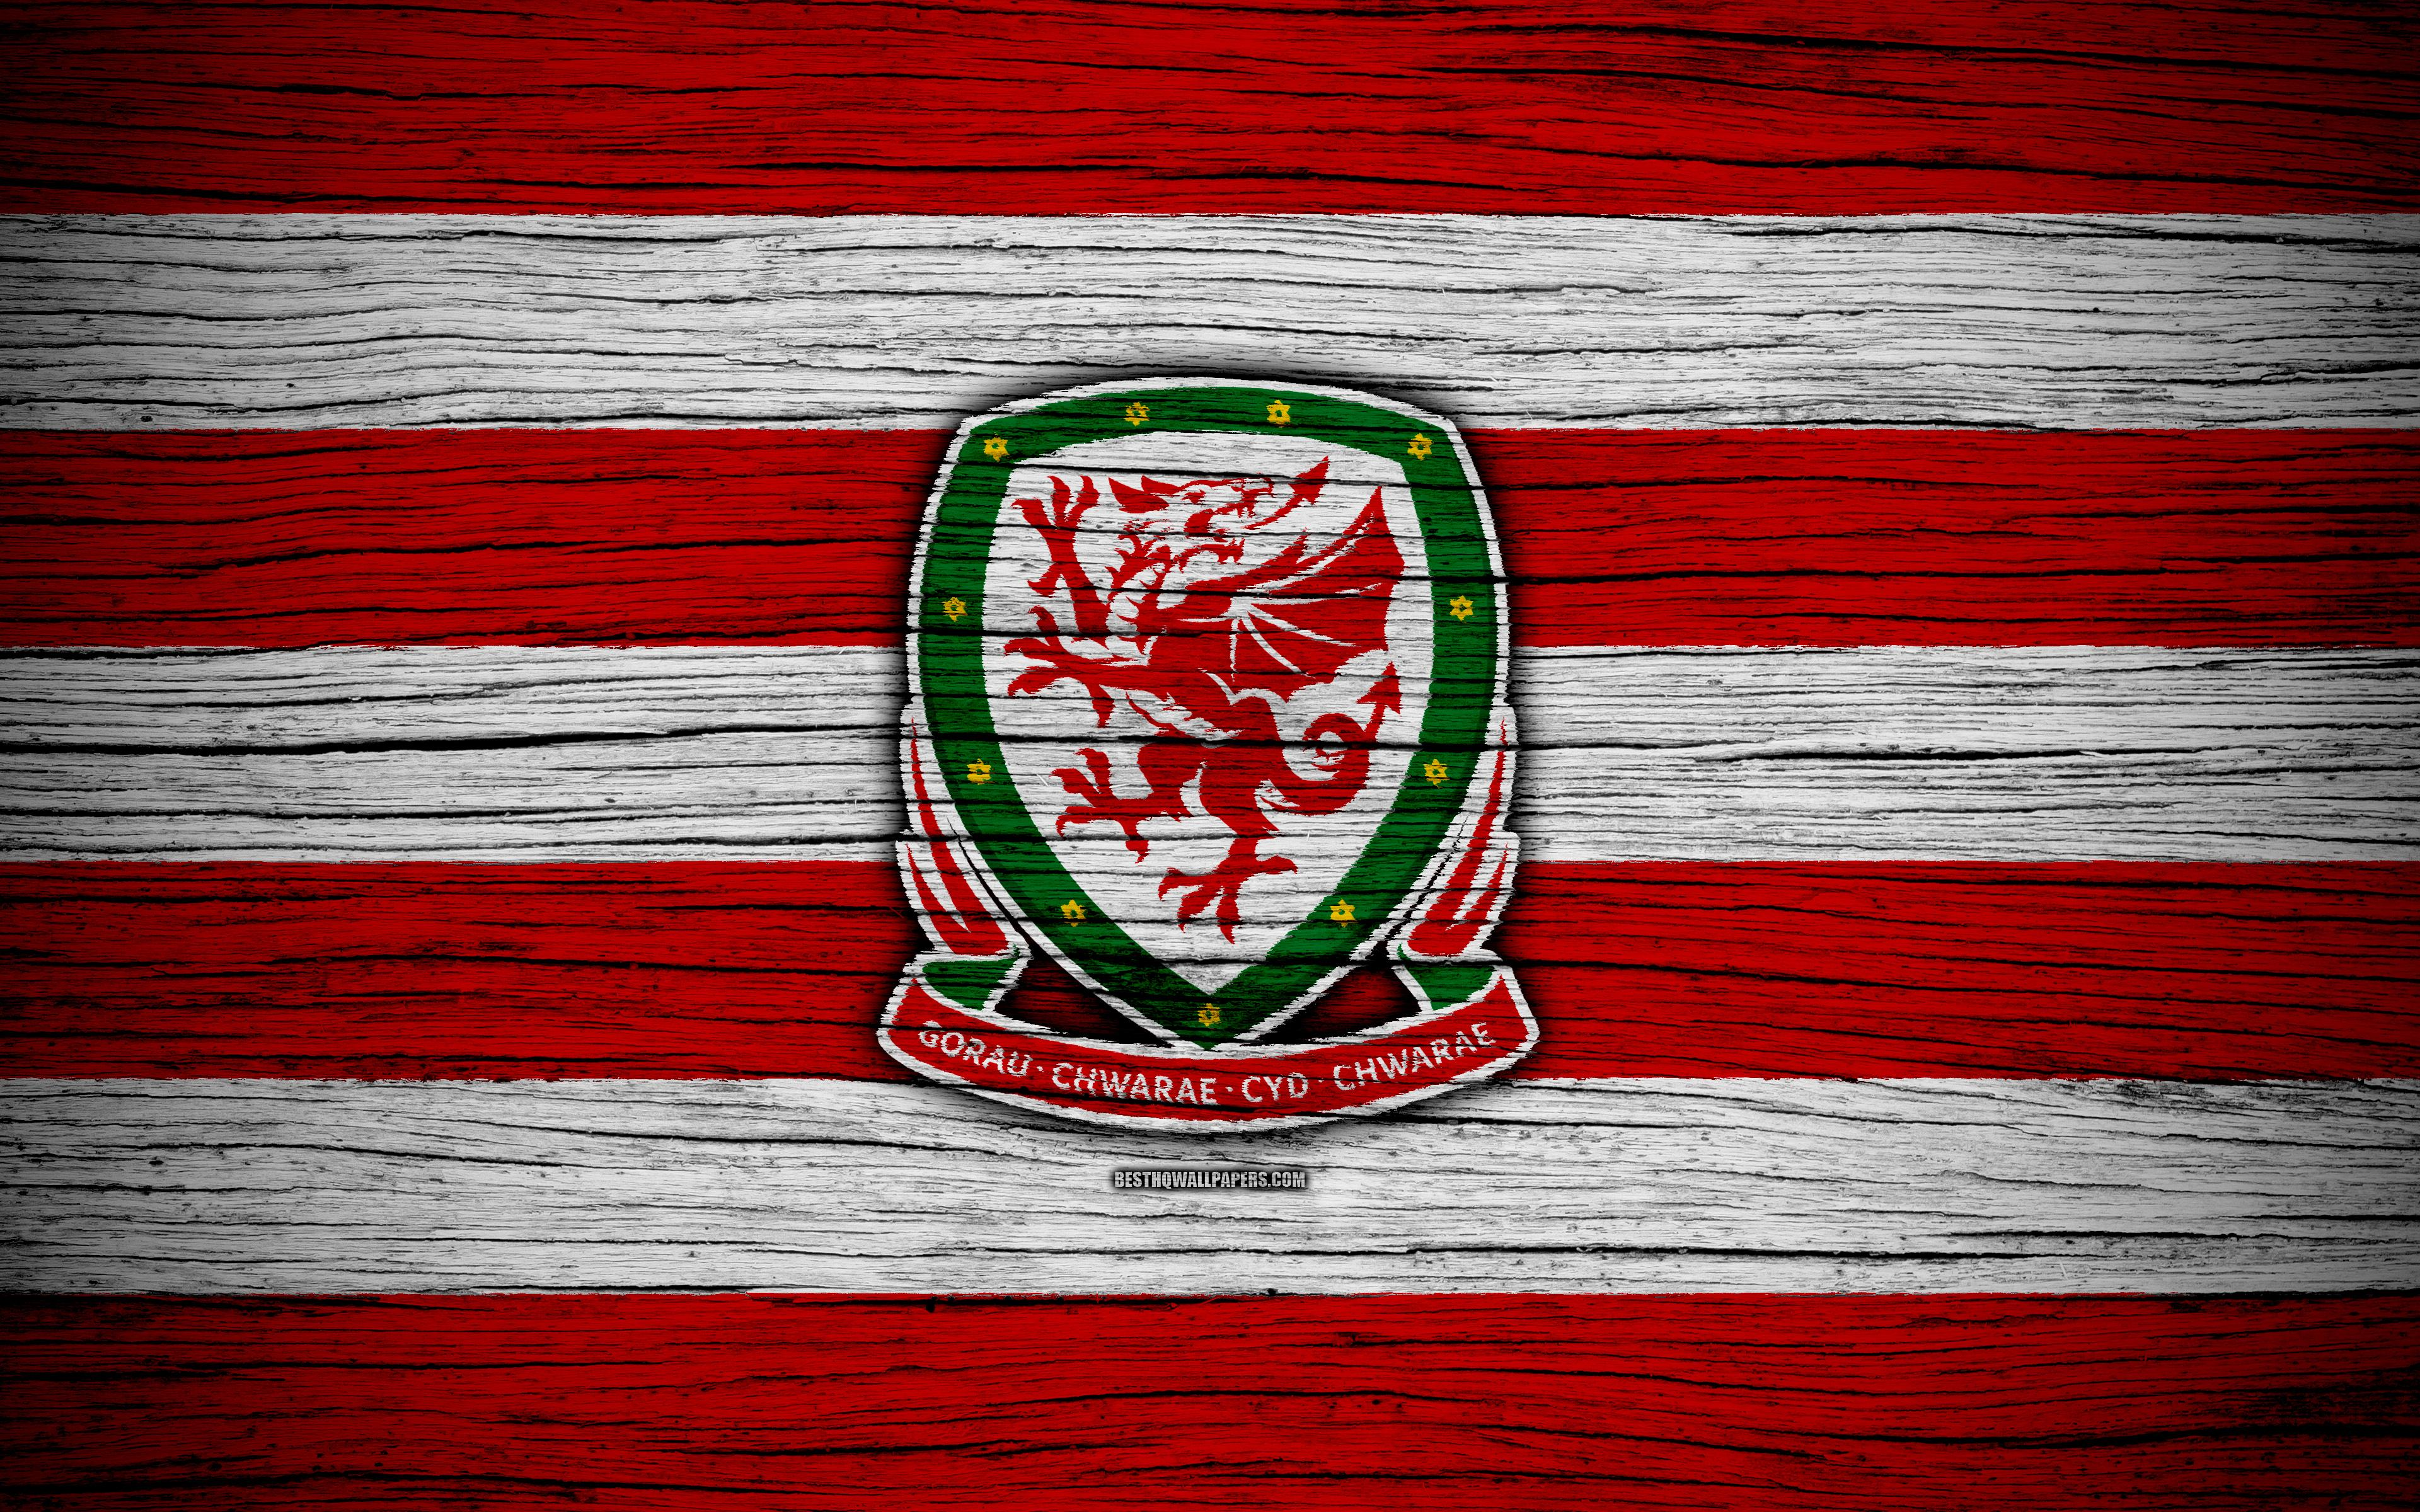 Download wallpapers 4k, Wales national football team, logo, UEFA